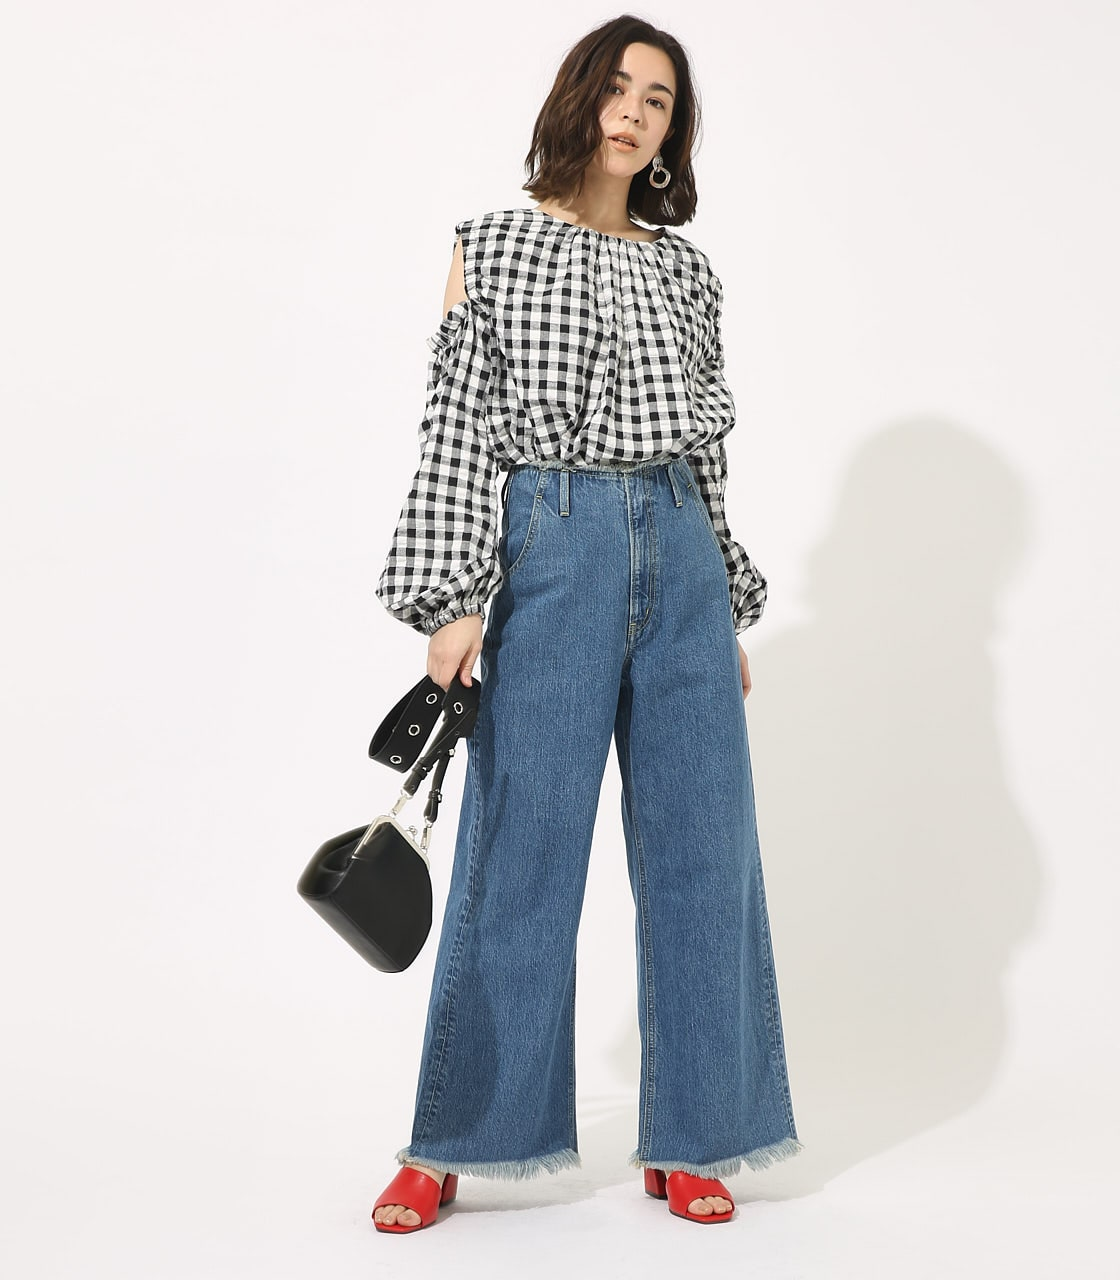 【AZUL BY MOUSSY】GINGHAM OPEN SHOULDER TOPS 【MOOK49掲載 90053】 詳細画像 柄BLK 3